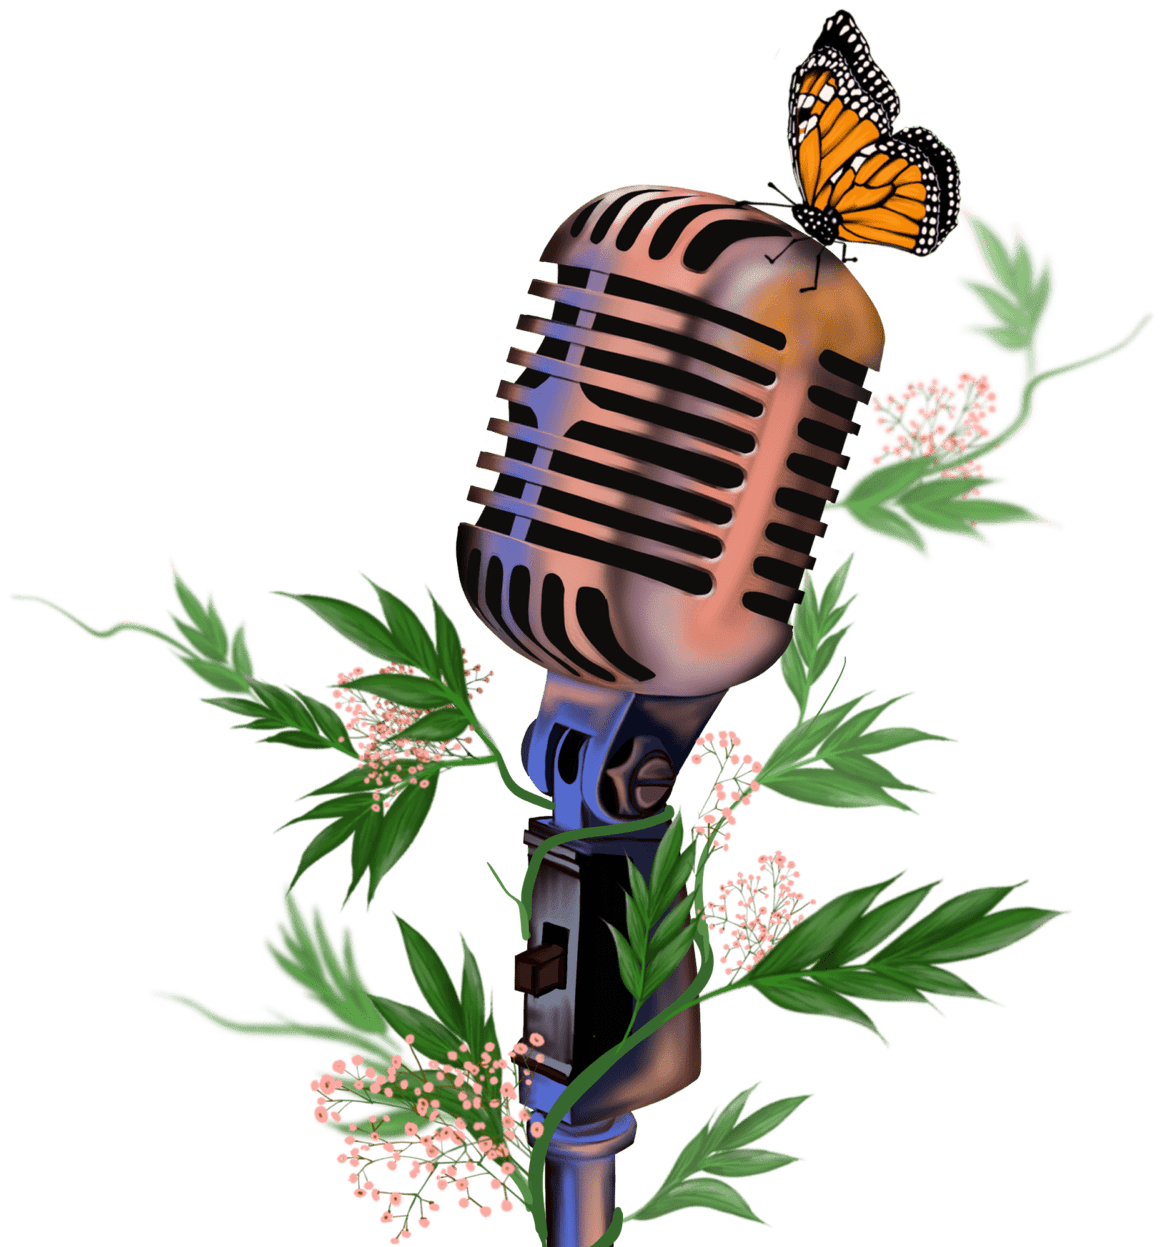 Illustration of mic surrounded by leafs and flowers.